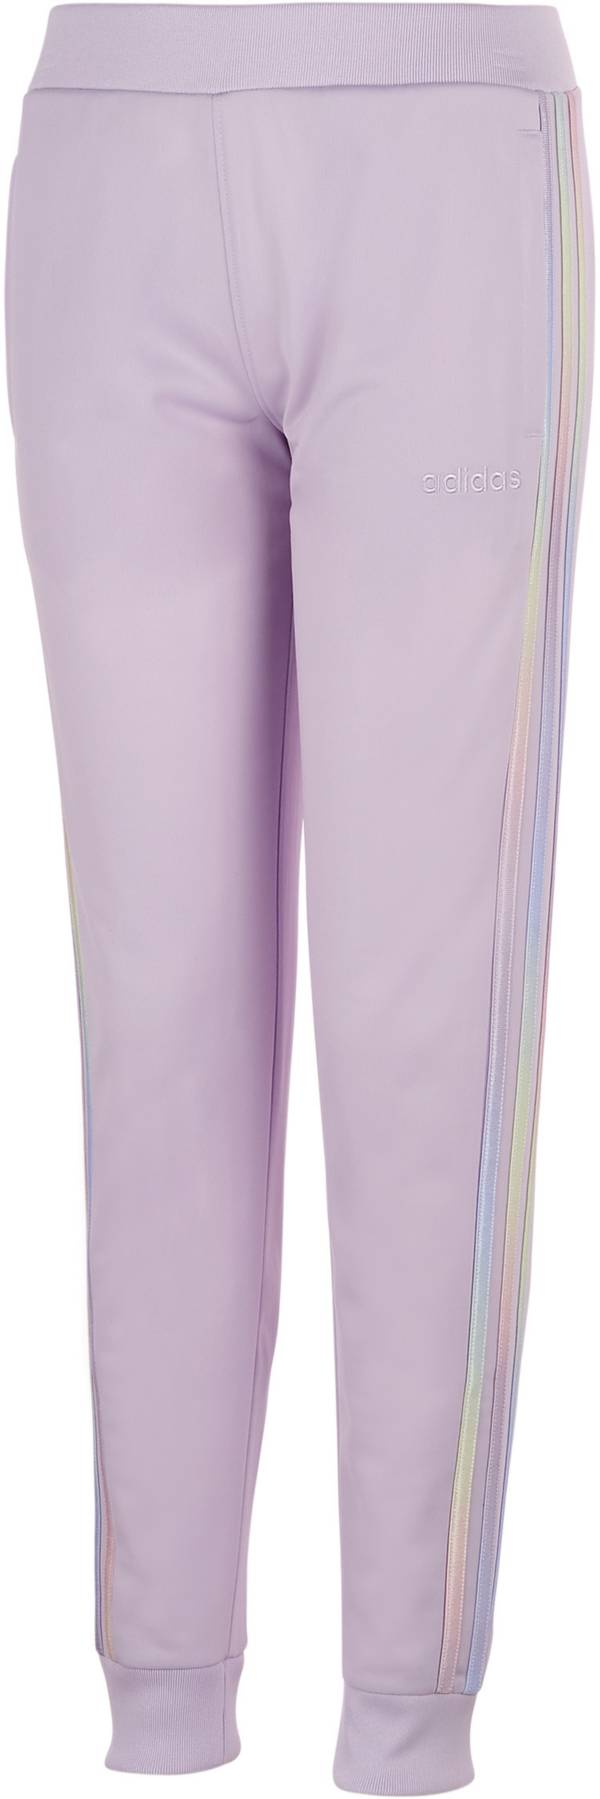 adidas Girls' Tricot Joggers product image